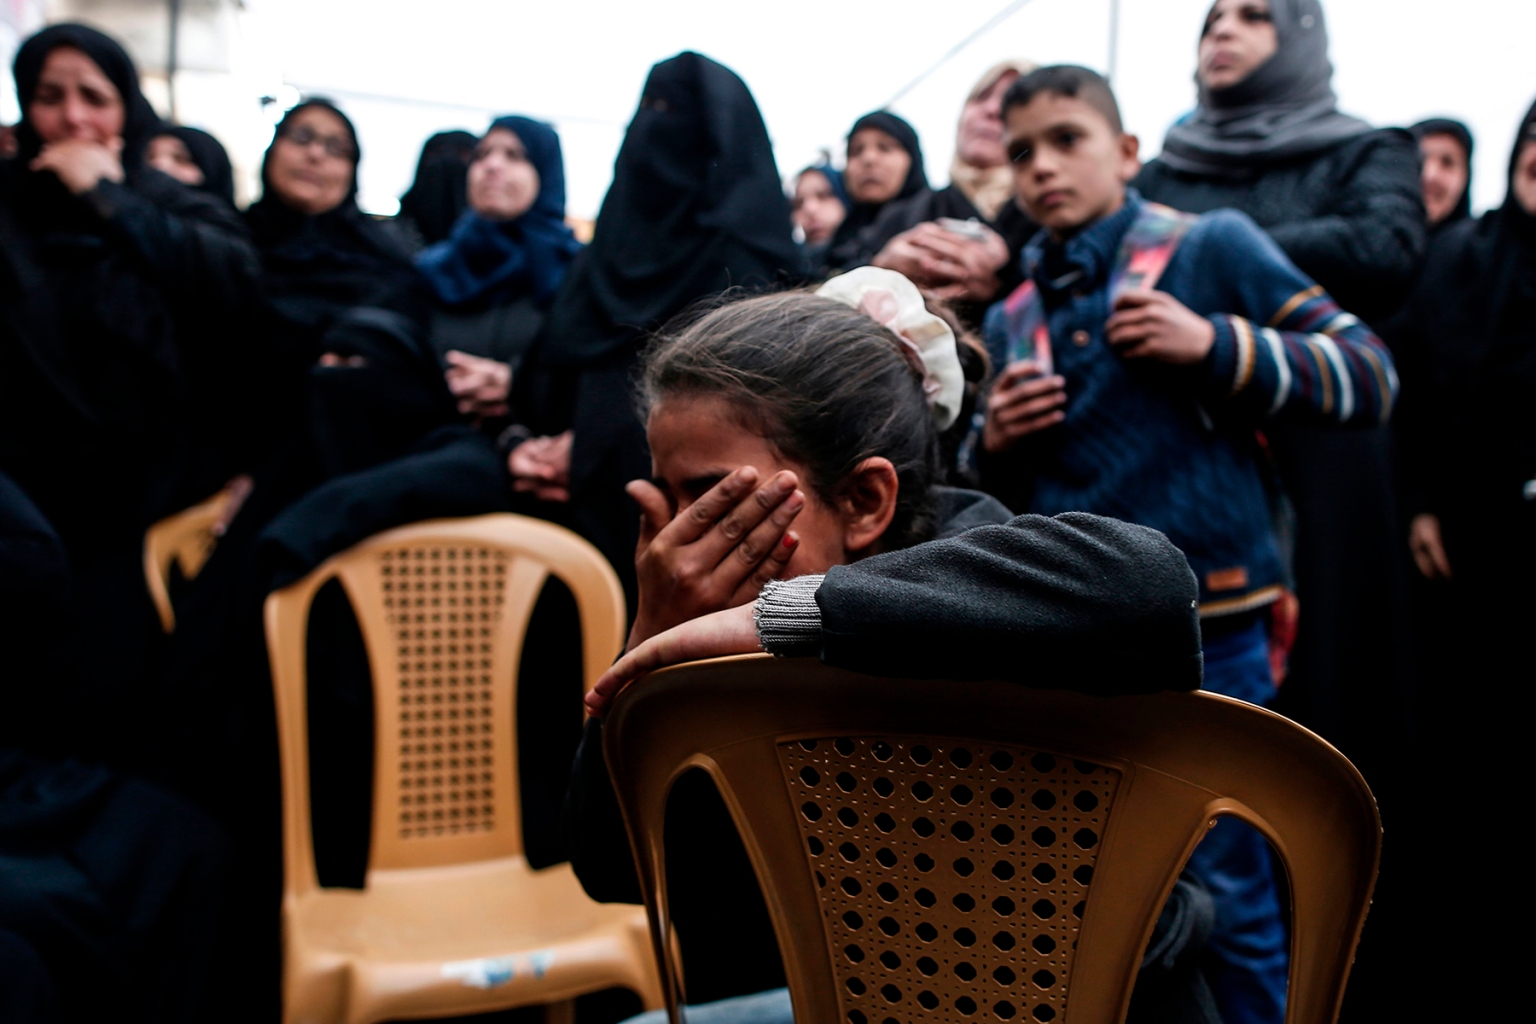 Relatives of Bilal al-Najjar, 17, mourn during his funeral in Khan Yunis in the southern Gaza Strip after four Palestinians were killed by Israeli fire on March 31. MAHMUD HAMS/AFP/Getty Images